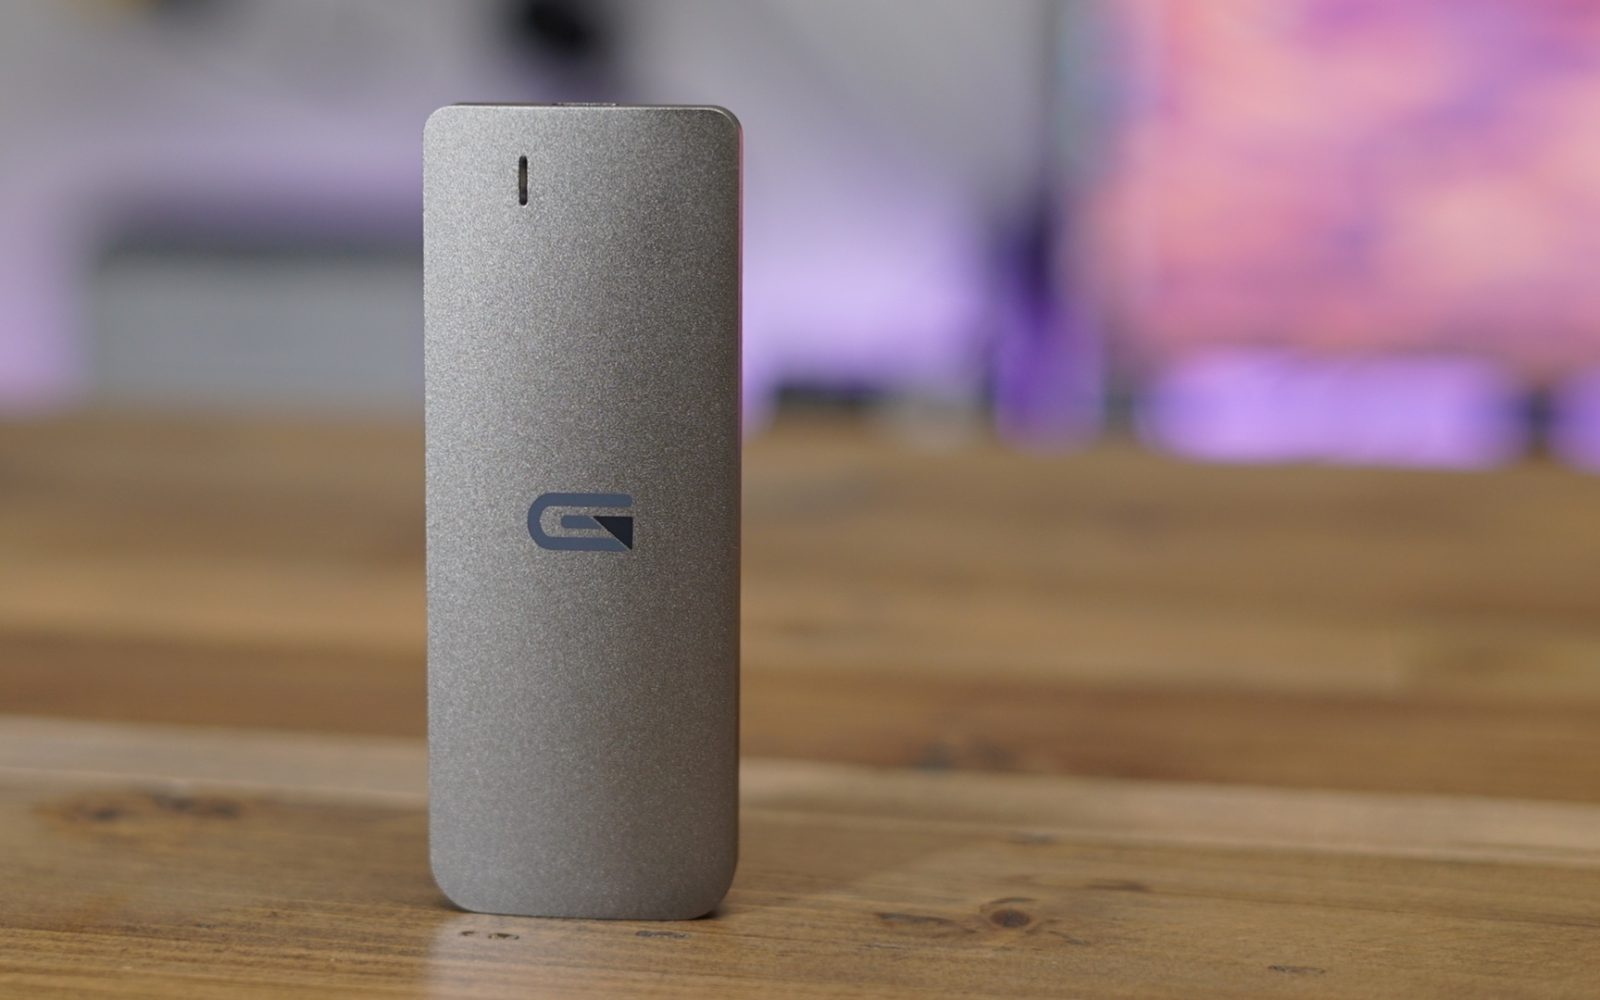 Hands-on: Glyph's Atom SSD is a good choice for MacBook and MacBook